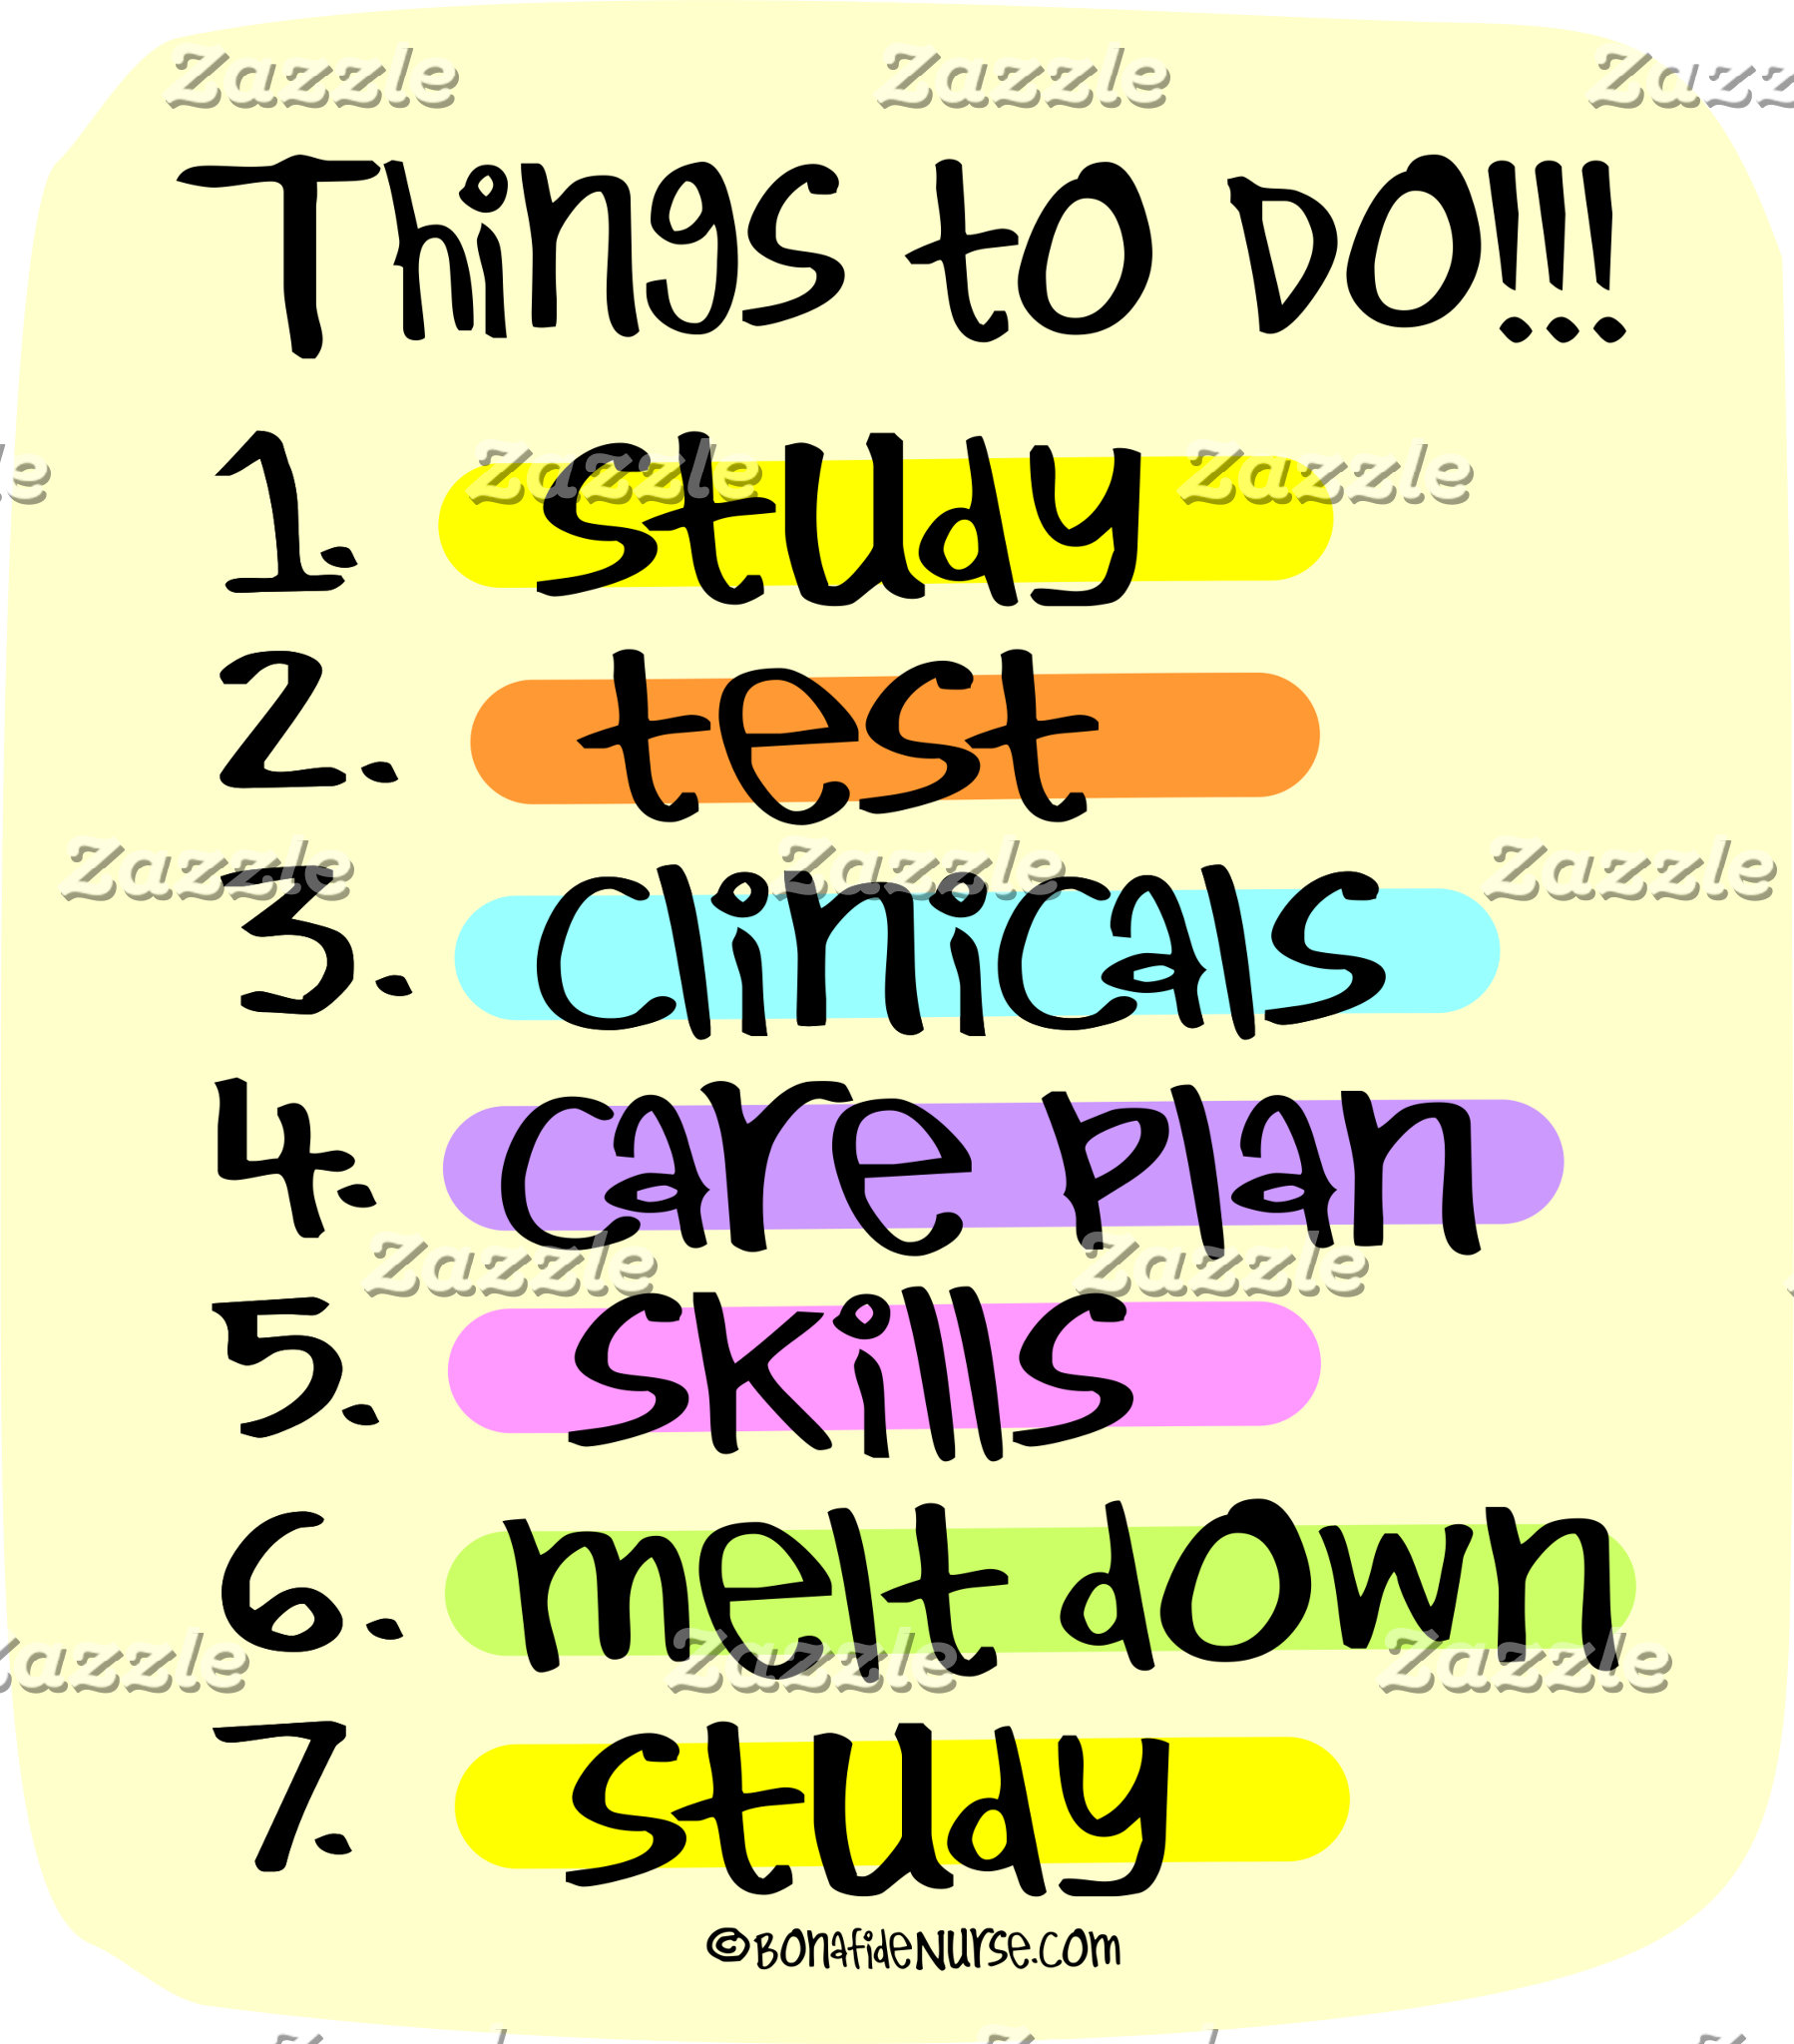 Student Nurse To Do List